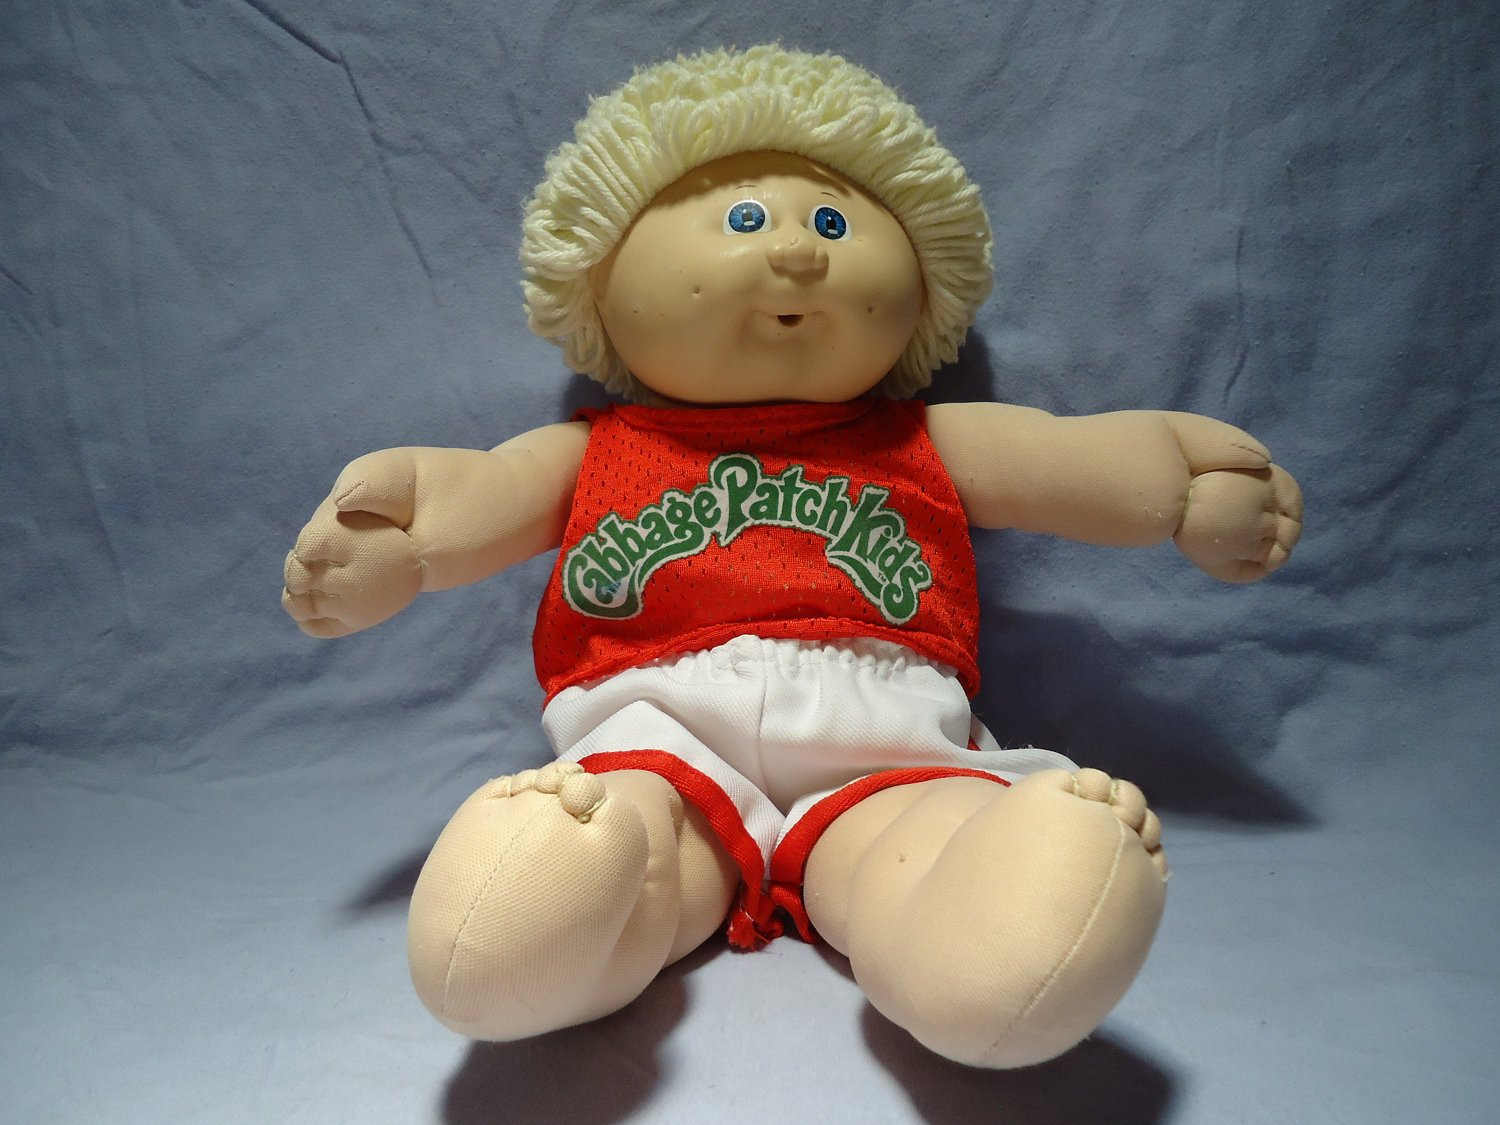 Awesome Vintage Cabbage Patch Kids Doll Appalachian by Old Cabbage Patch Doll Of Wonderful 47 Ideas Old Cabbage Patch Doll